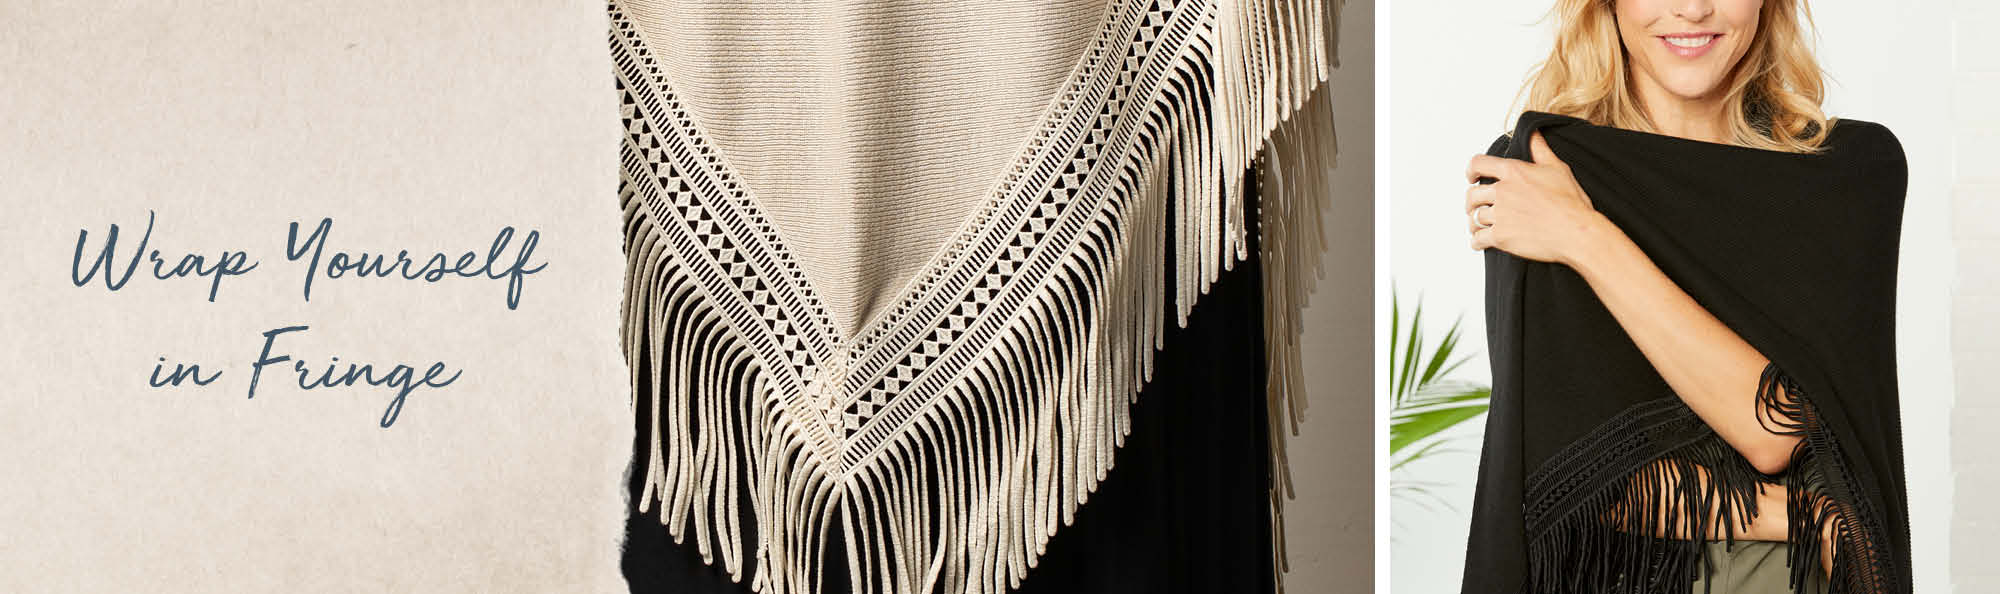 Wrap Yourself in Fringe. Woman wrapped in a black shawl with fringe on the edges.